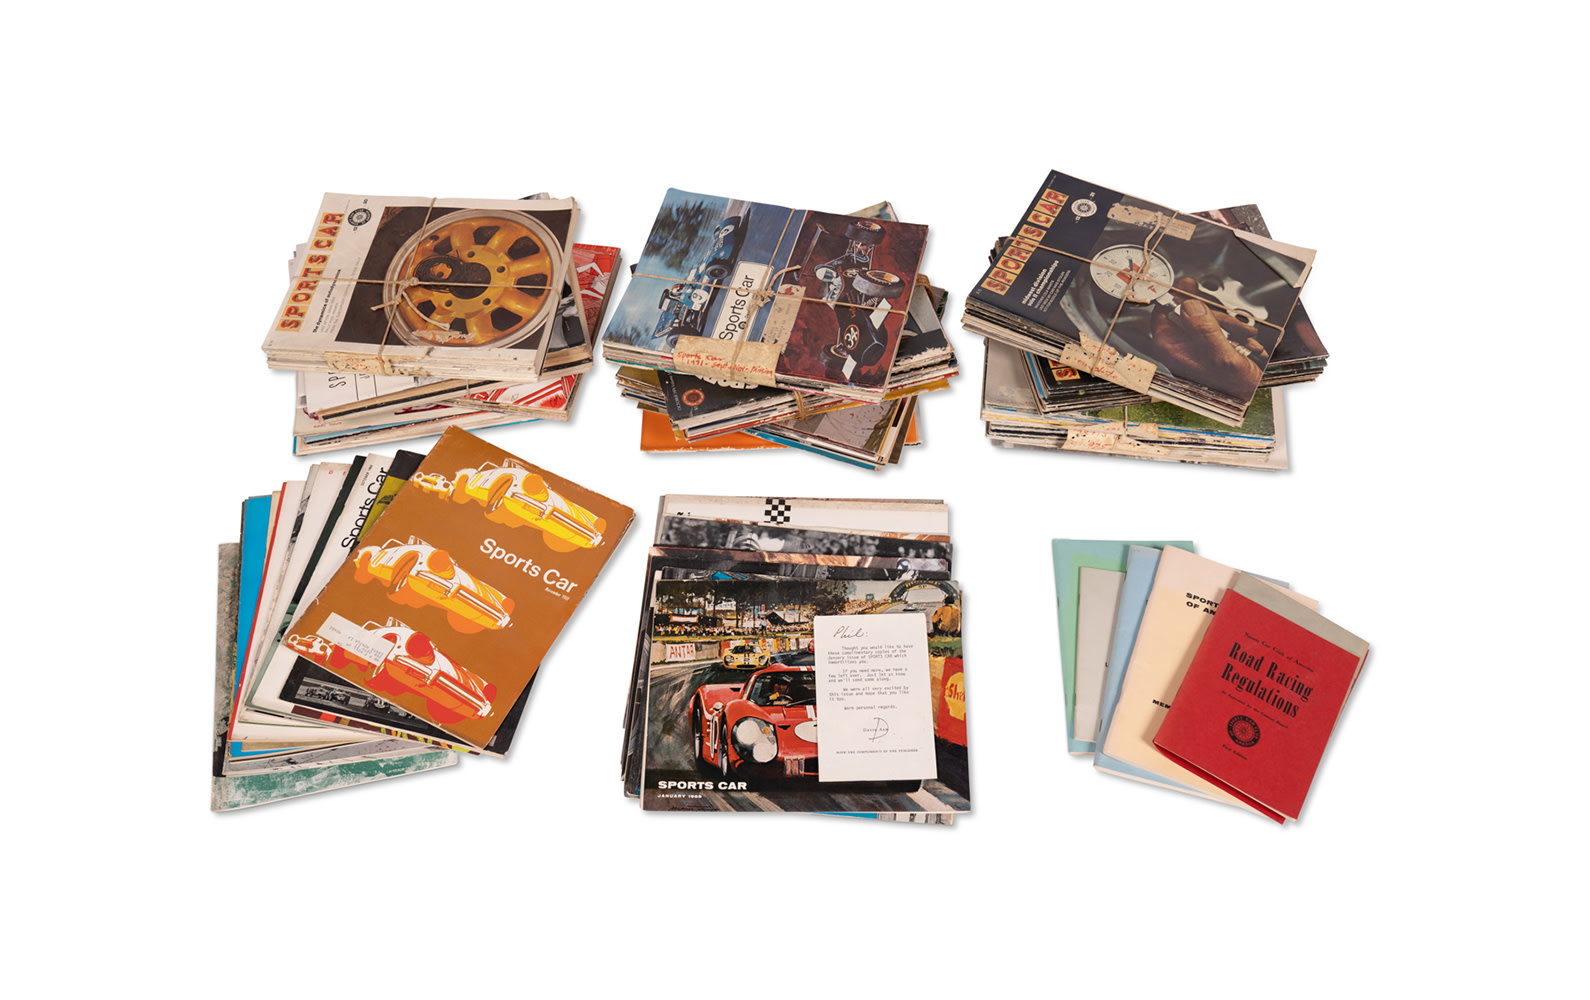 Assorted SCCA Publications and Sports Car Magazines